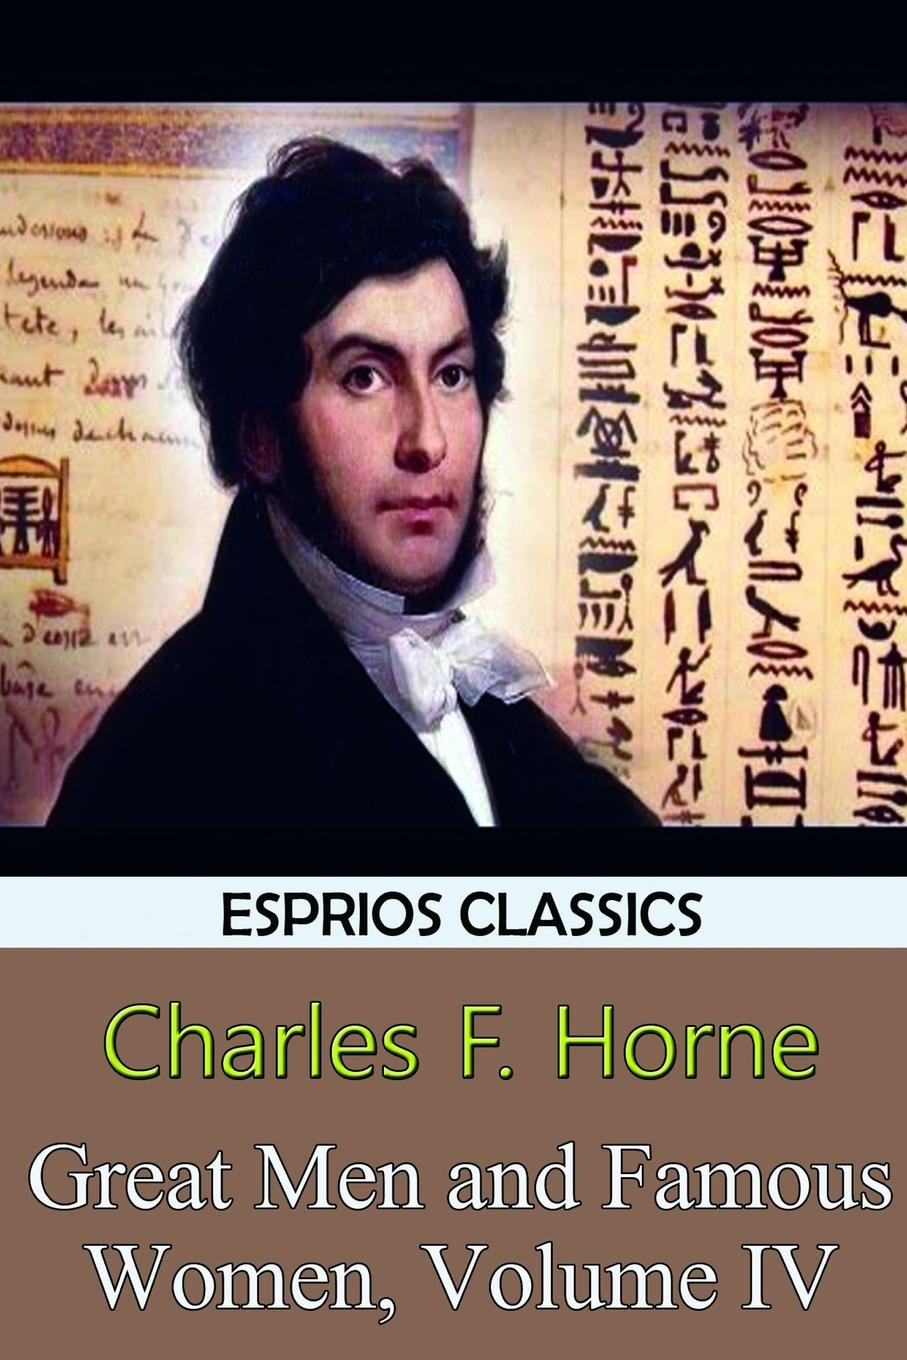 Charles F. Horne Great Men and Famous Women, Volume IV (Esprios Classics) hadley milton stories about famous men and women of our great country containing the lives of almost fifty of our nations heroes and heroines